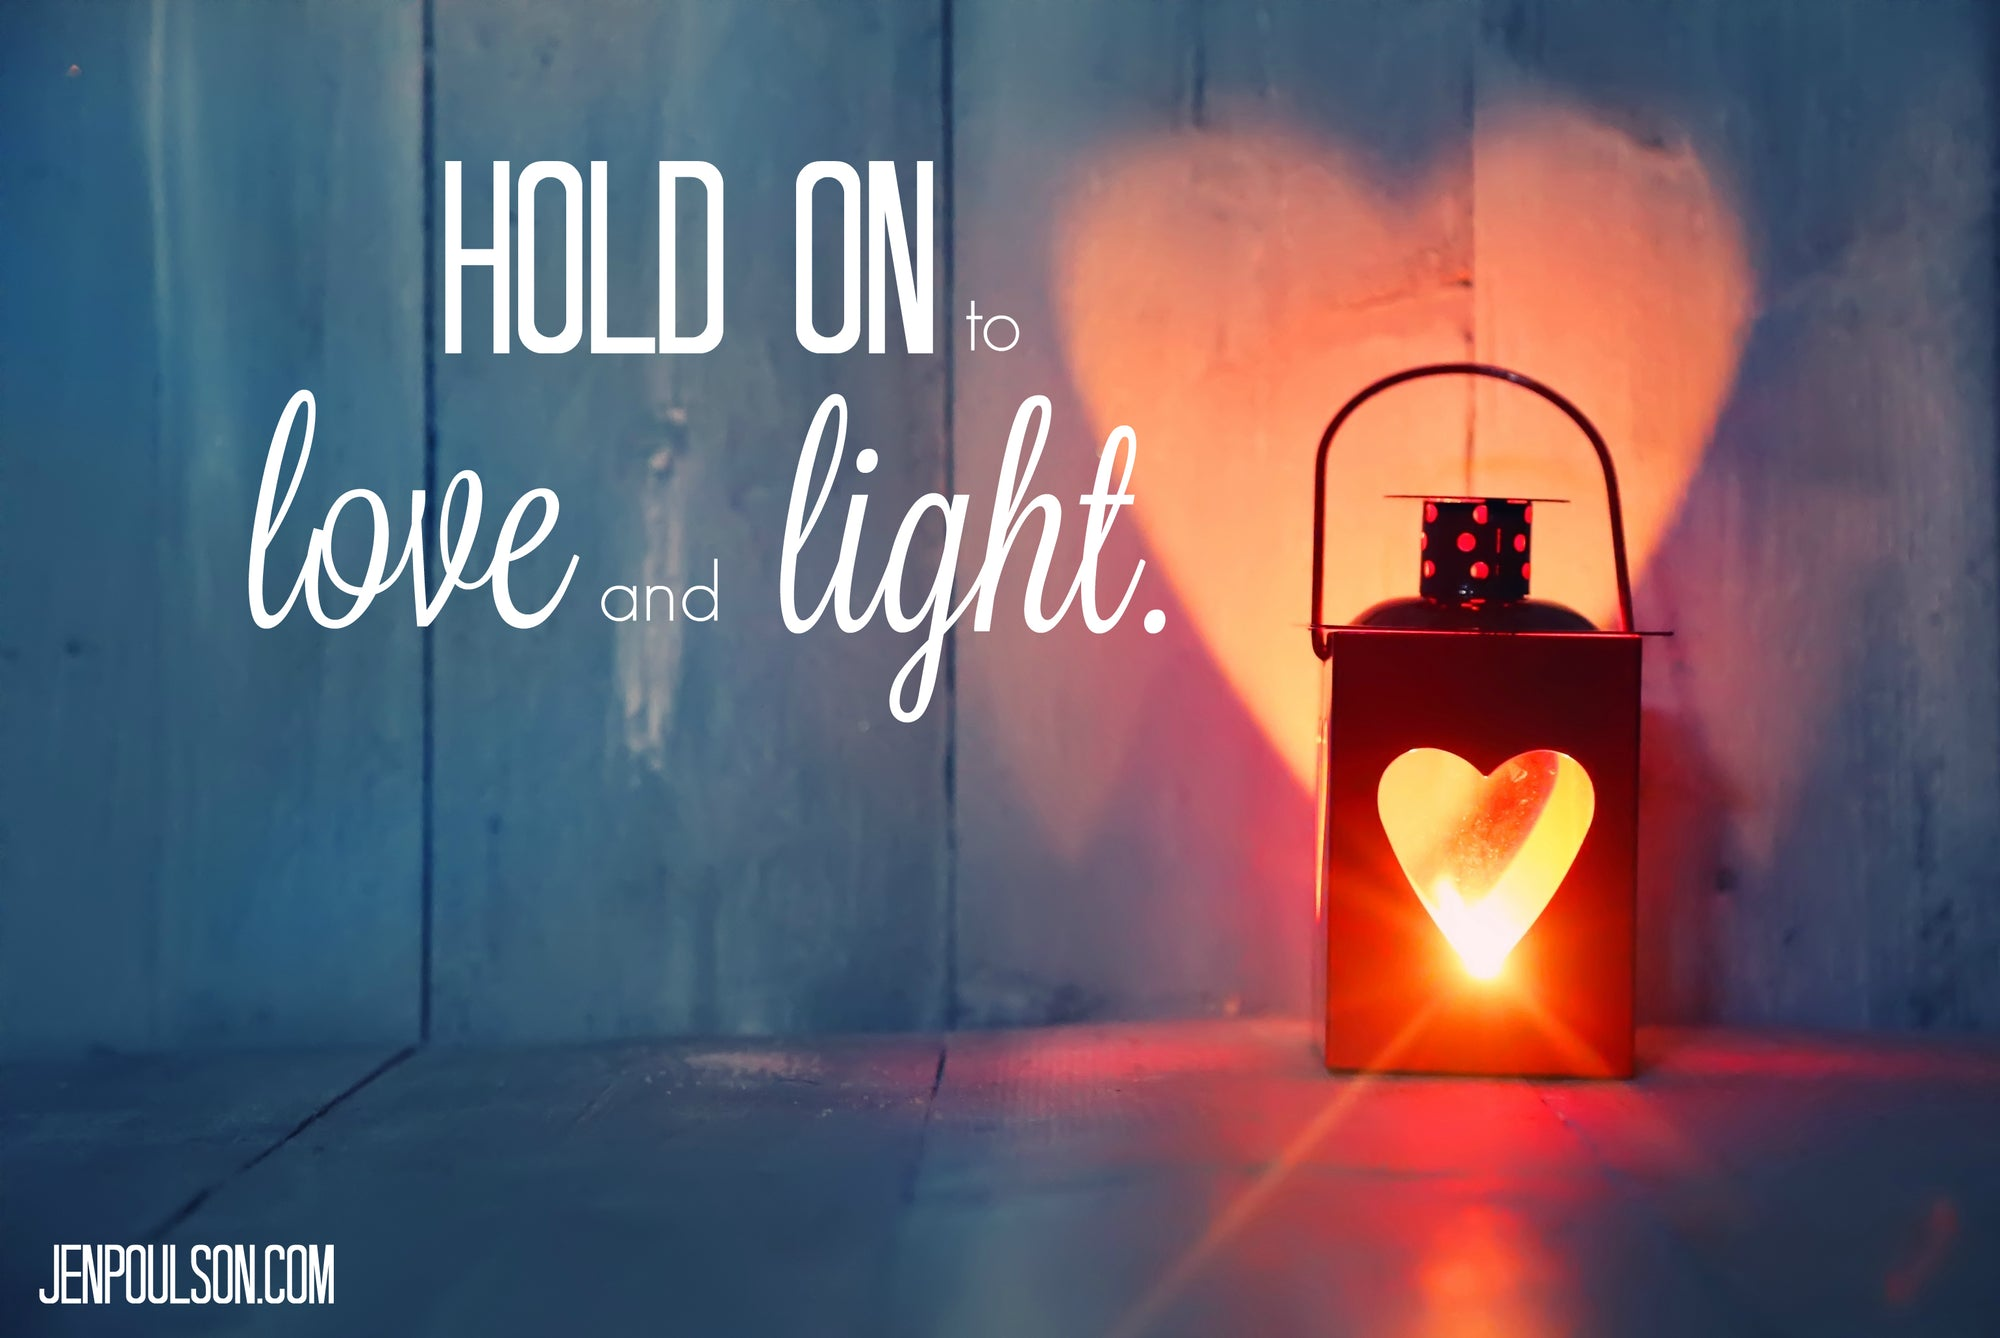 Hold on to Love & Light